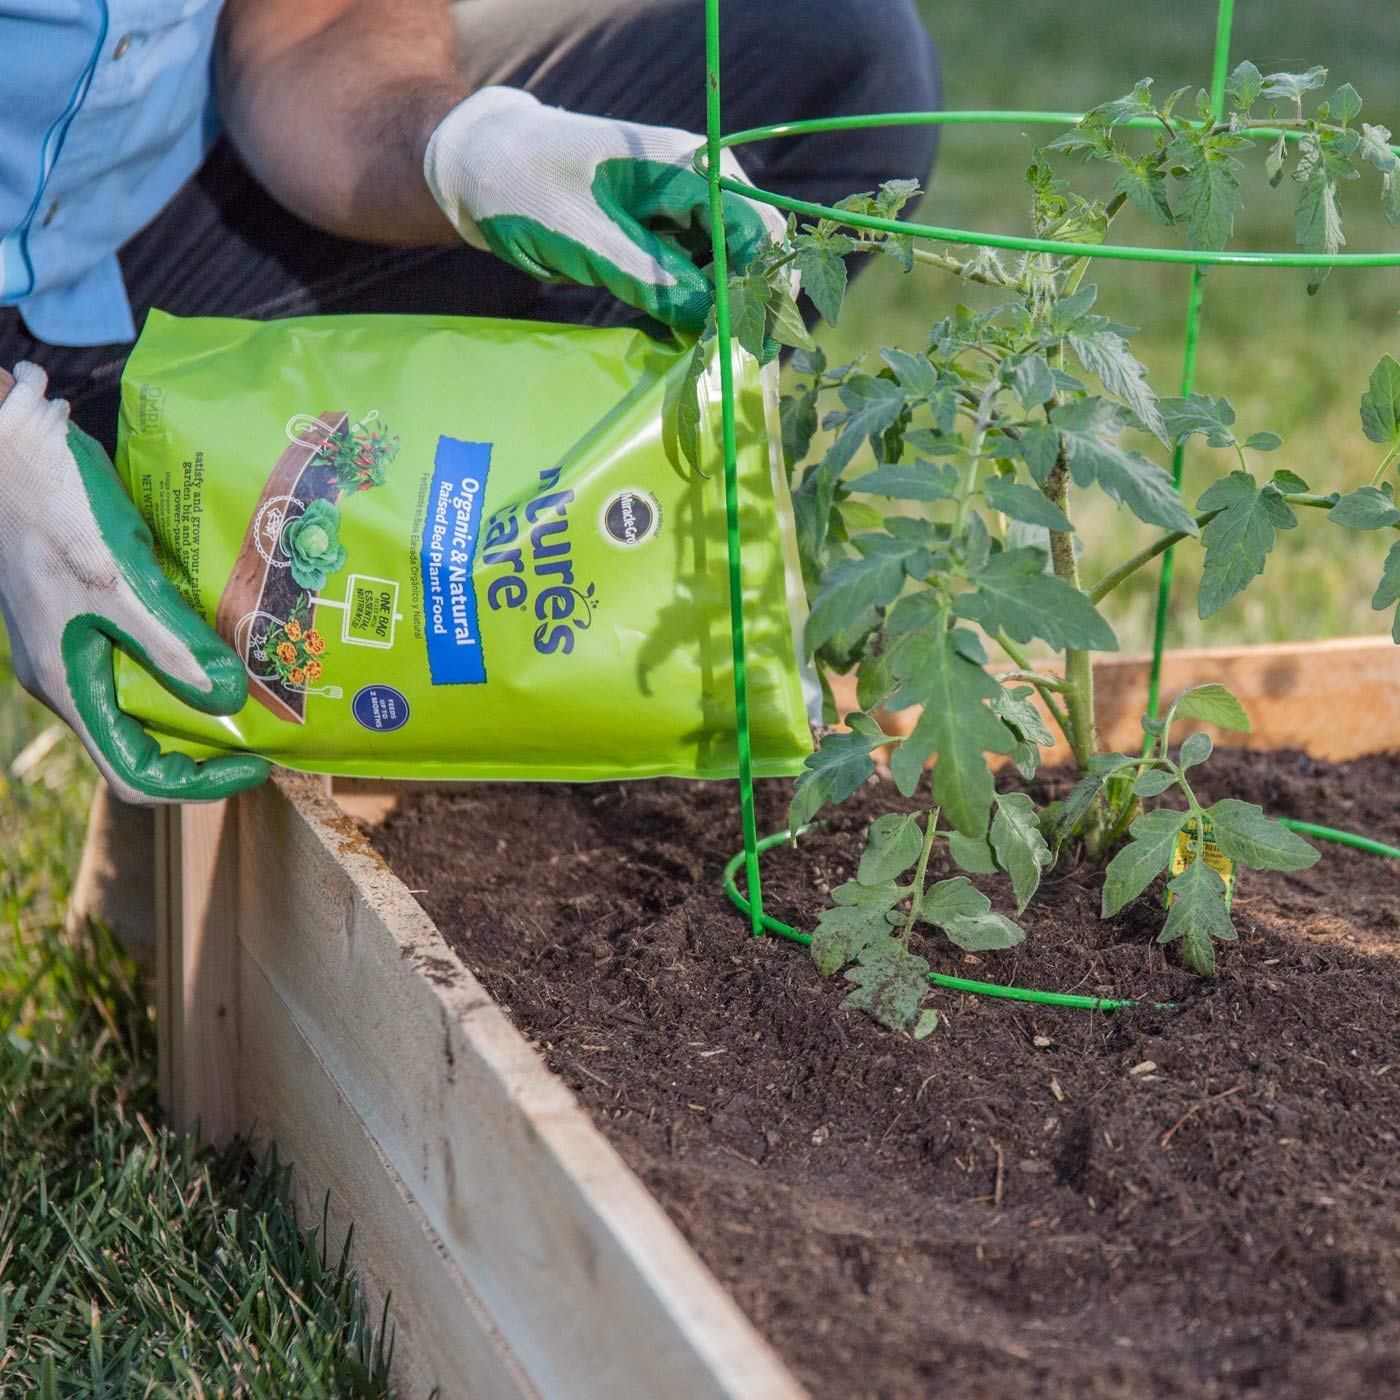 Amazon.com: Natures Care Organic & Natural Raised Bed Plant Food (Thrее Рack): Garden & Outdoor